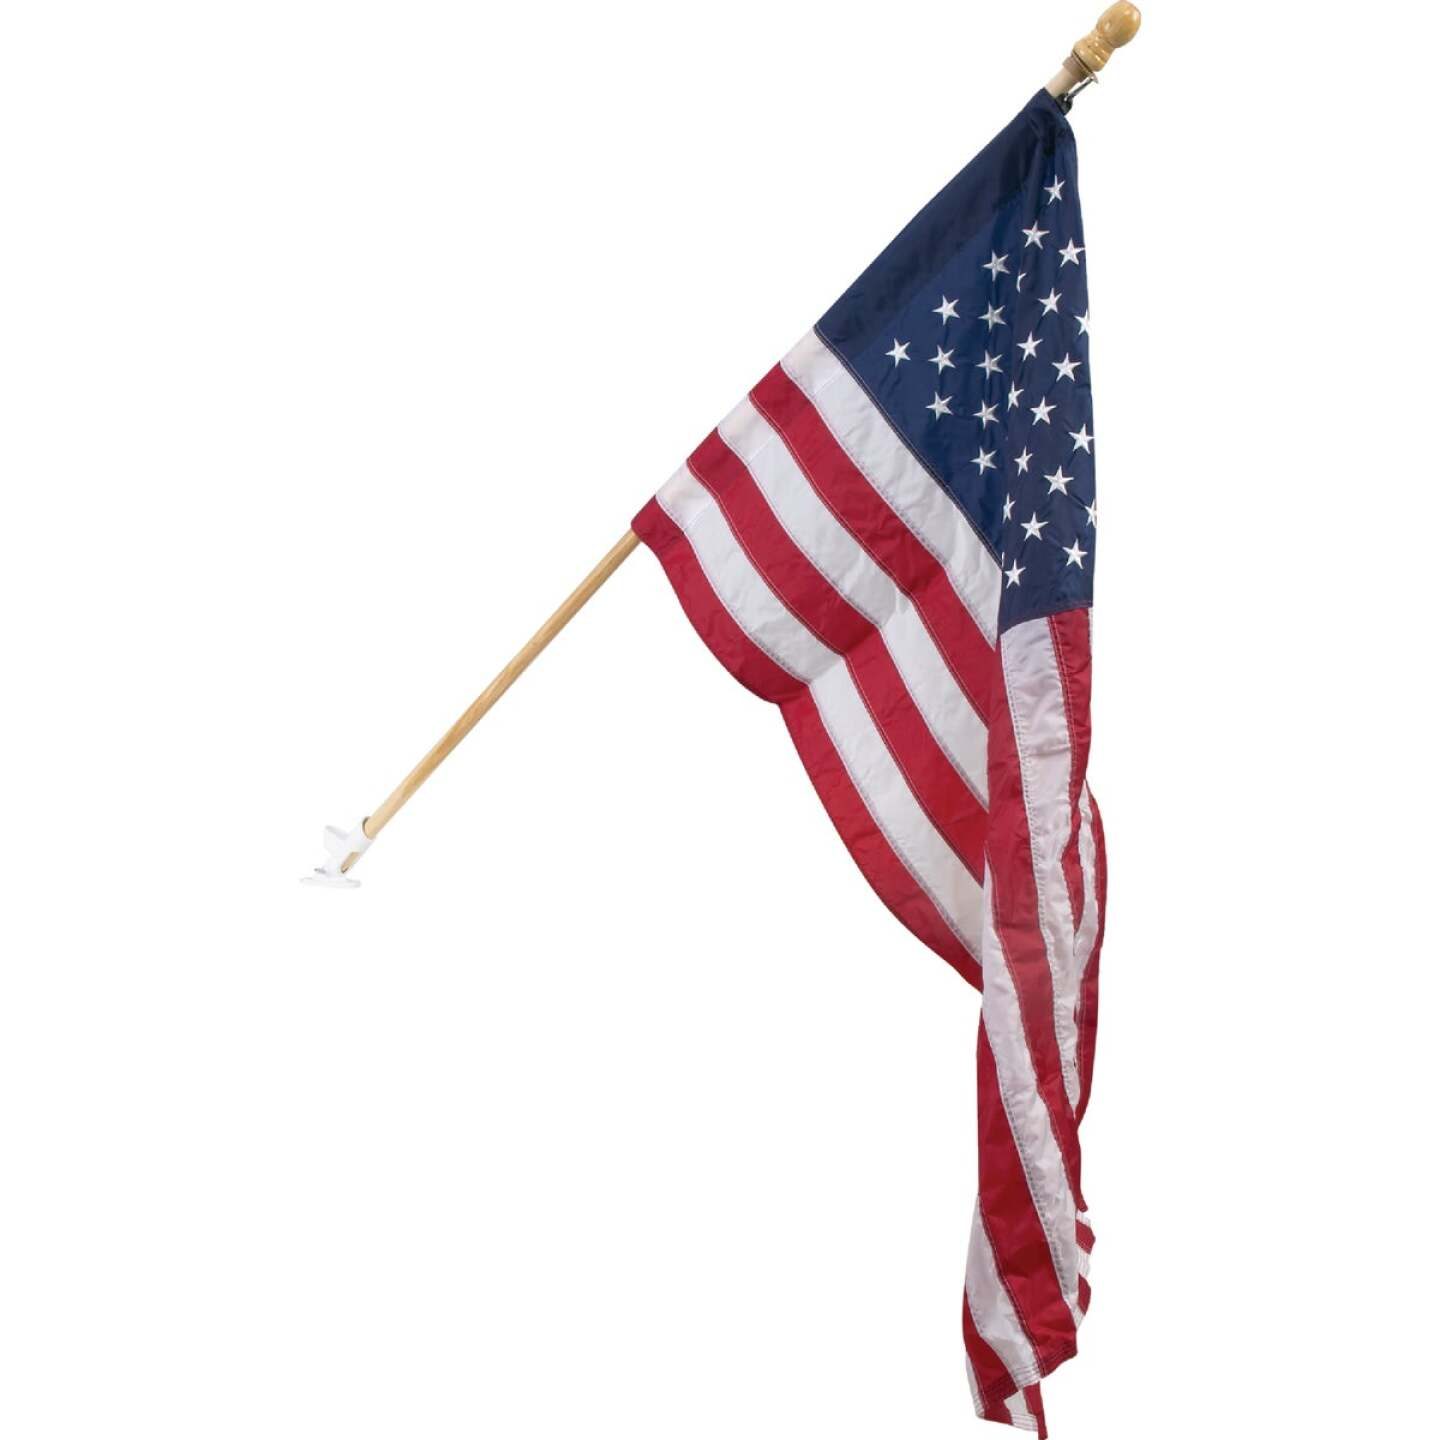 Valley Forge 2.5 Ft. x 4 Ft. Nylon American Flag & 5 Ft. Pole Kit Image 1